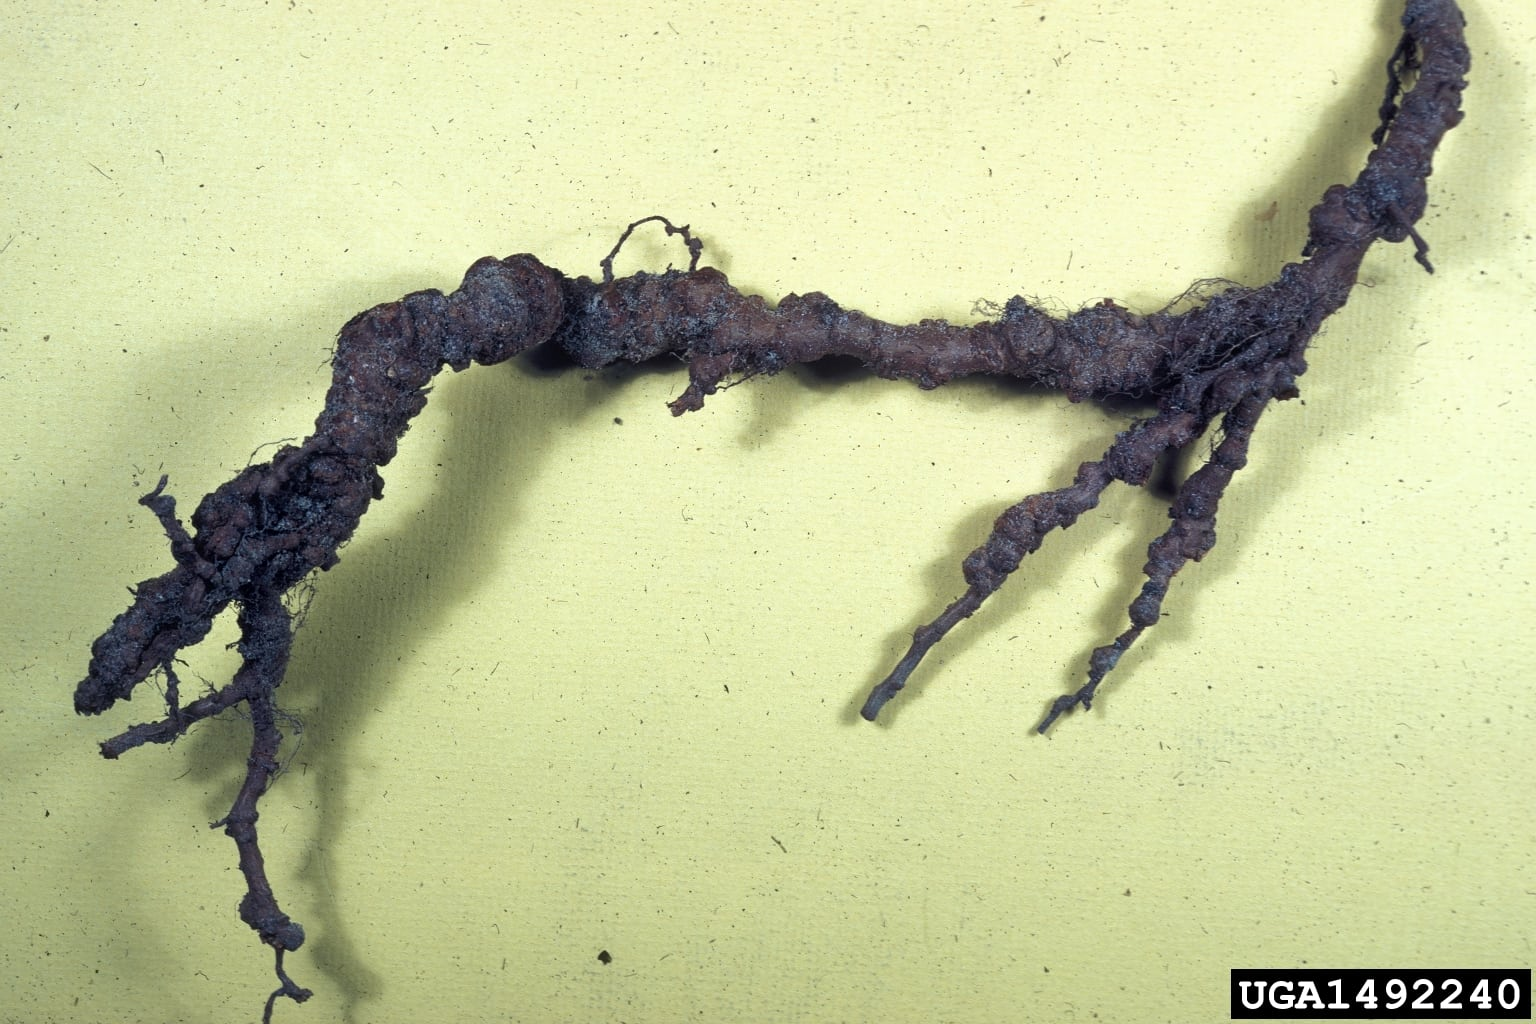 1544880520 how to treat root knot nematodes of peach trees takeseeds com - How To Treat Root Knot Nematodes Of Peach Trees